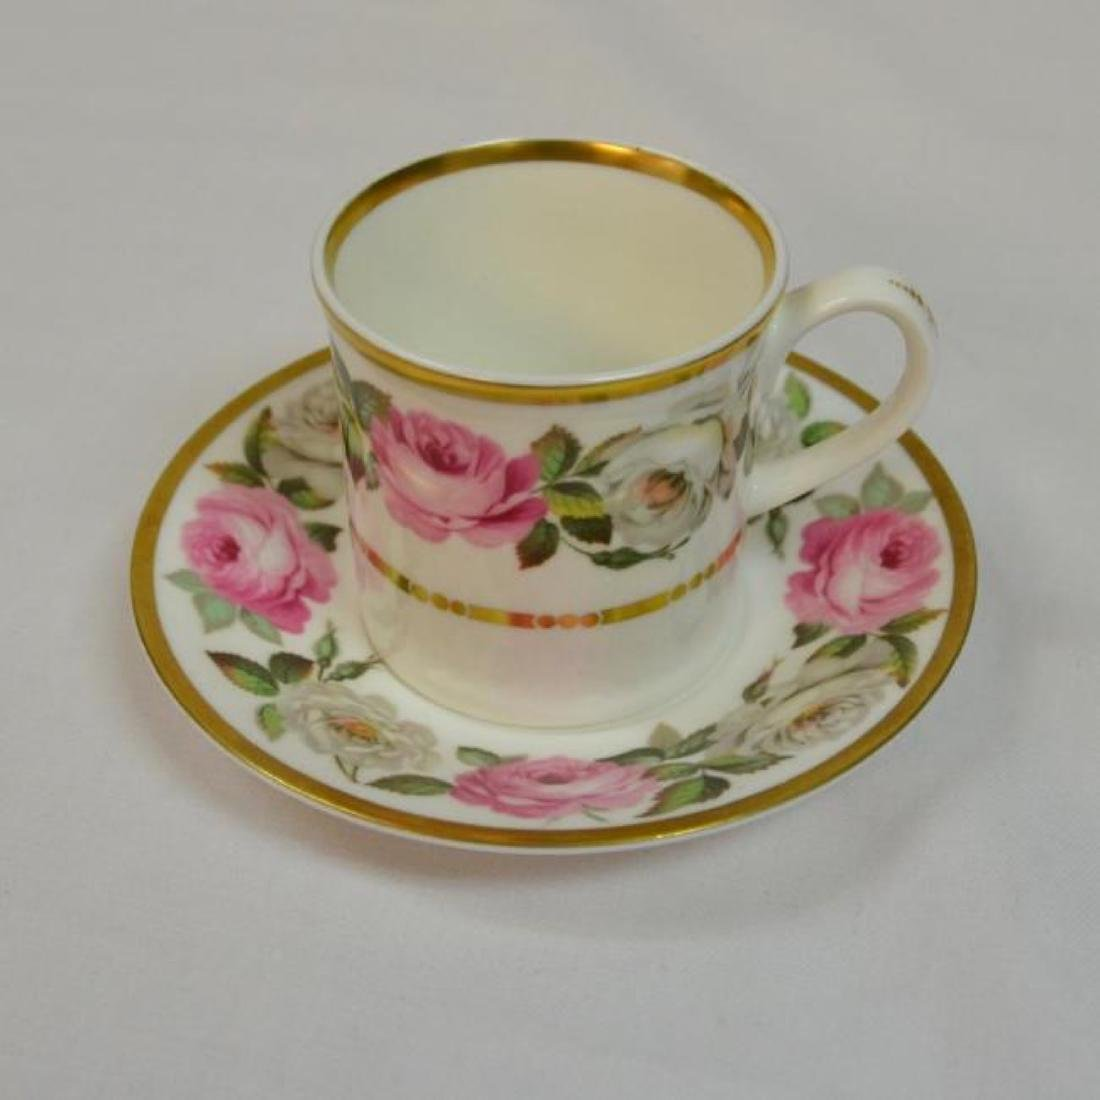 Royal Worcester Antique Bone China Coffee Cup - 5